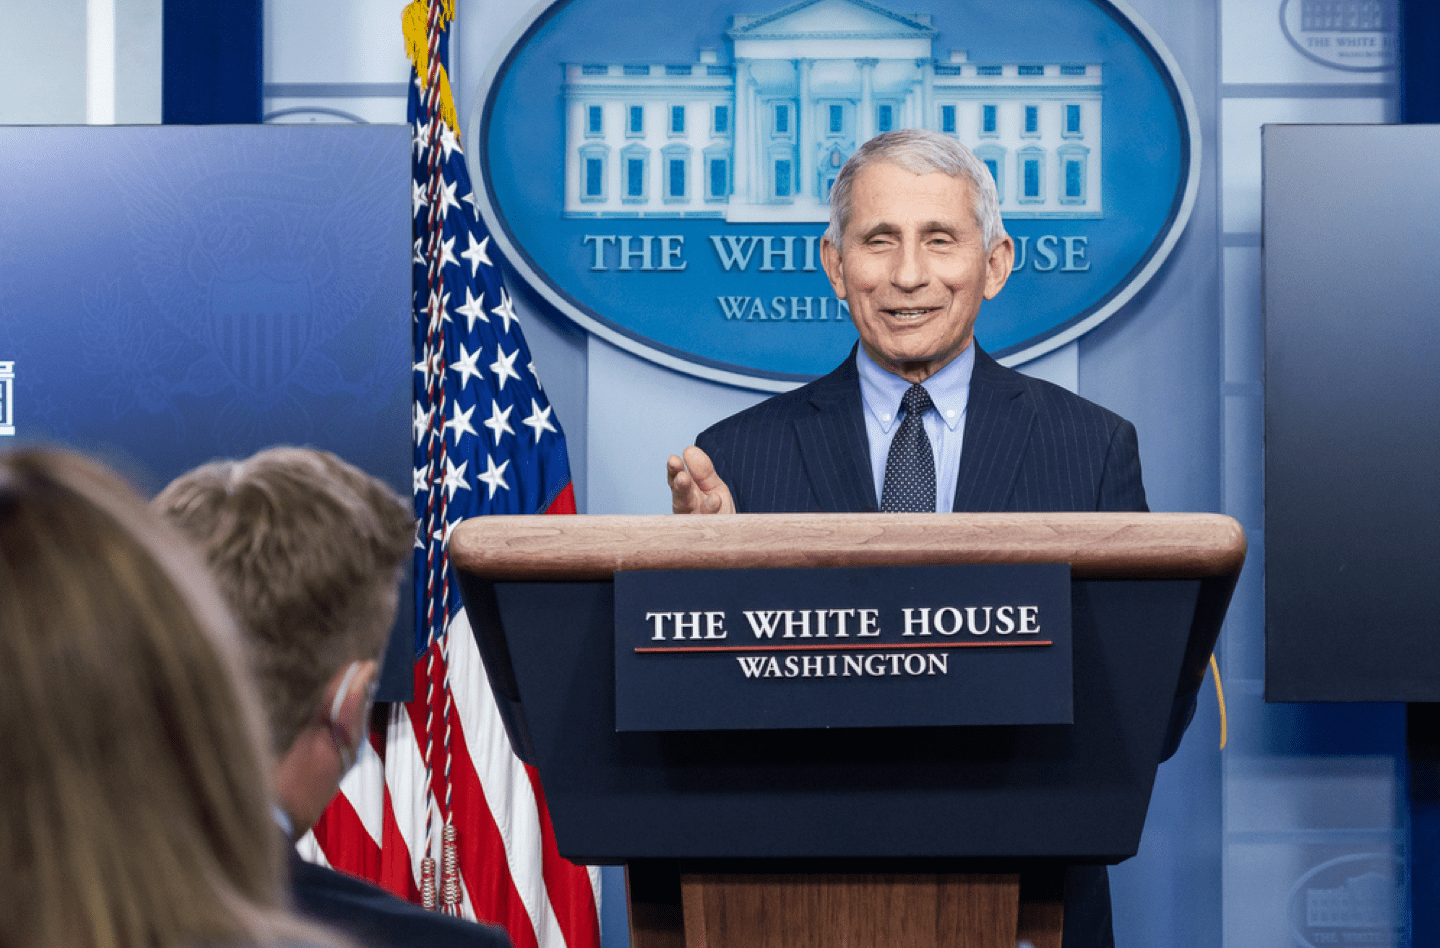 a smiling fauci speaks behind a podium in the white house briefing room